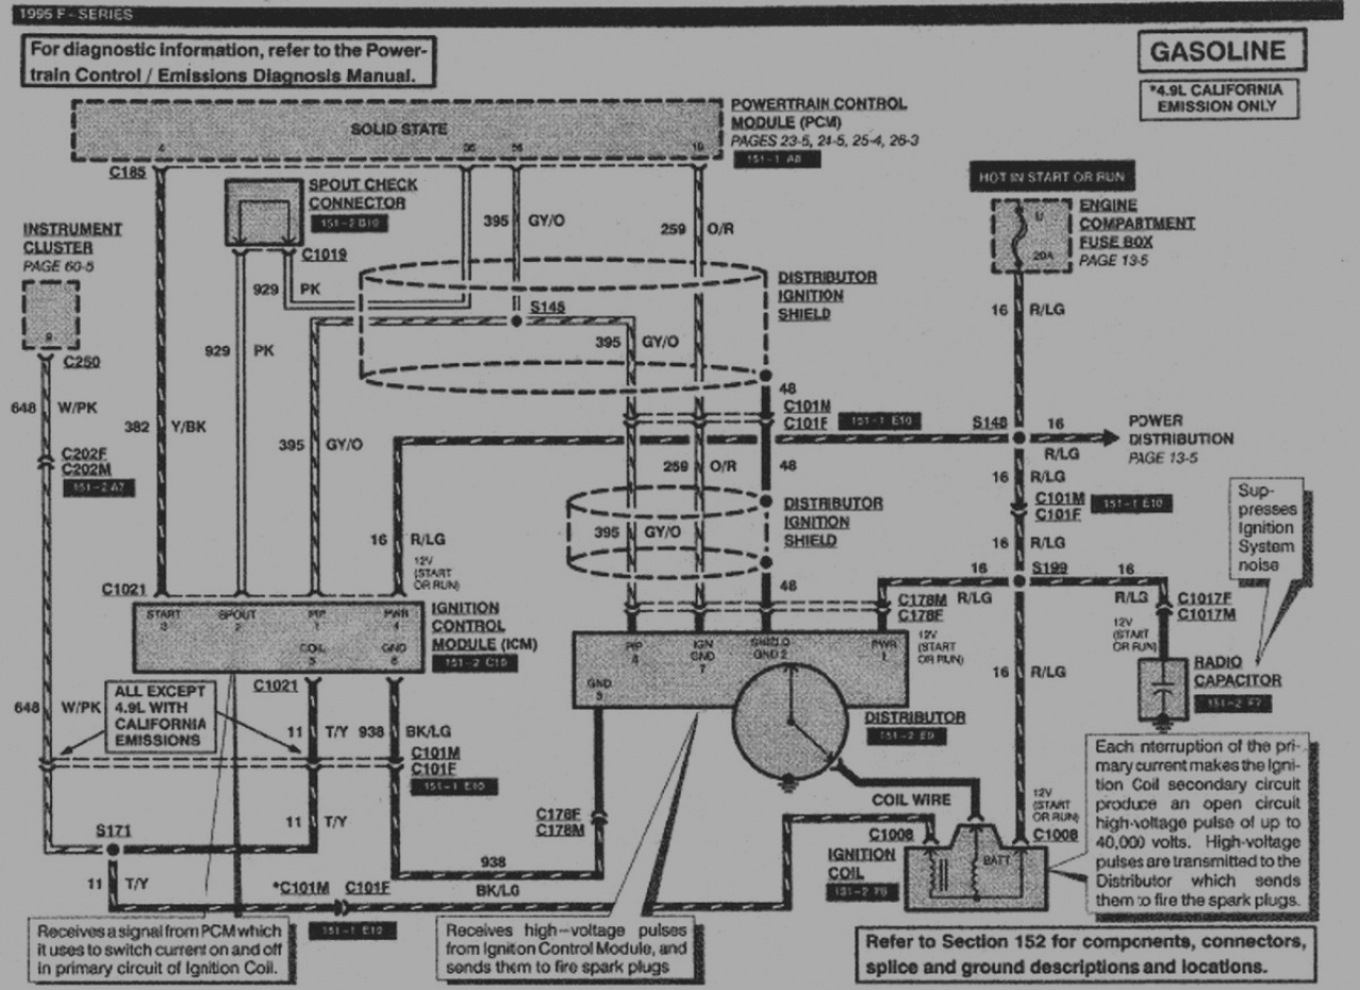 1980 Ford F 150 Ignition Wiring - wiring diagram solid-start -  solid-start.siamocampobasso.it | 1980 Ford Ignition Wiring Diagram Schematic |  | siamocampobasso.it